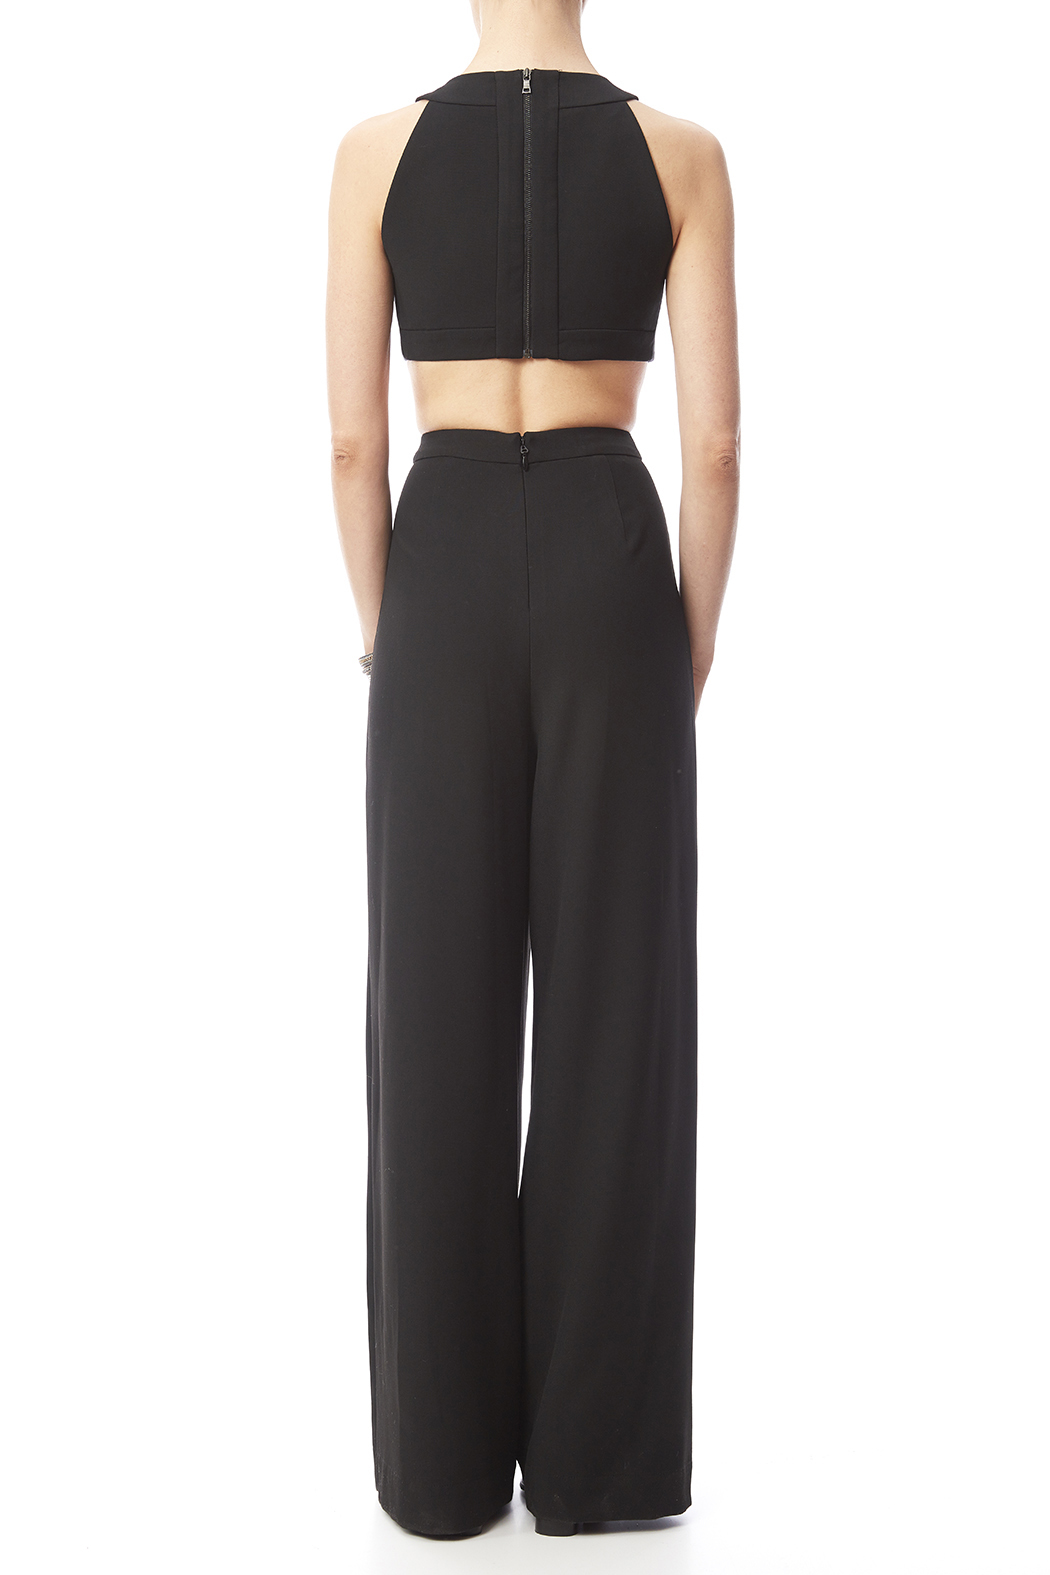 Bcbg Max Azria Black Cut Out Jumpsuit From New Jersey By